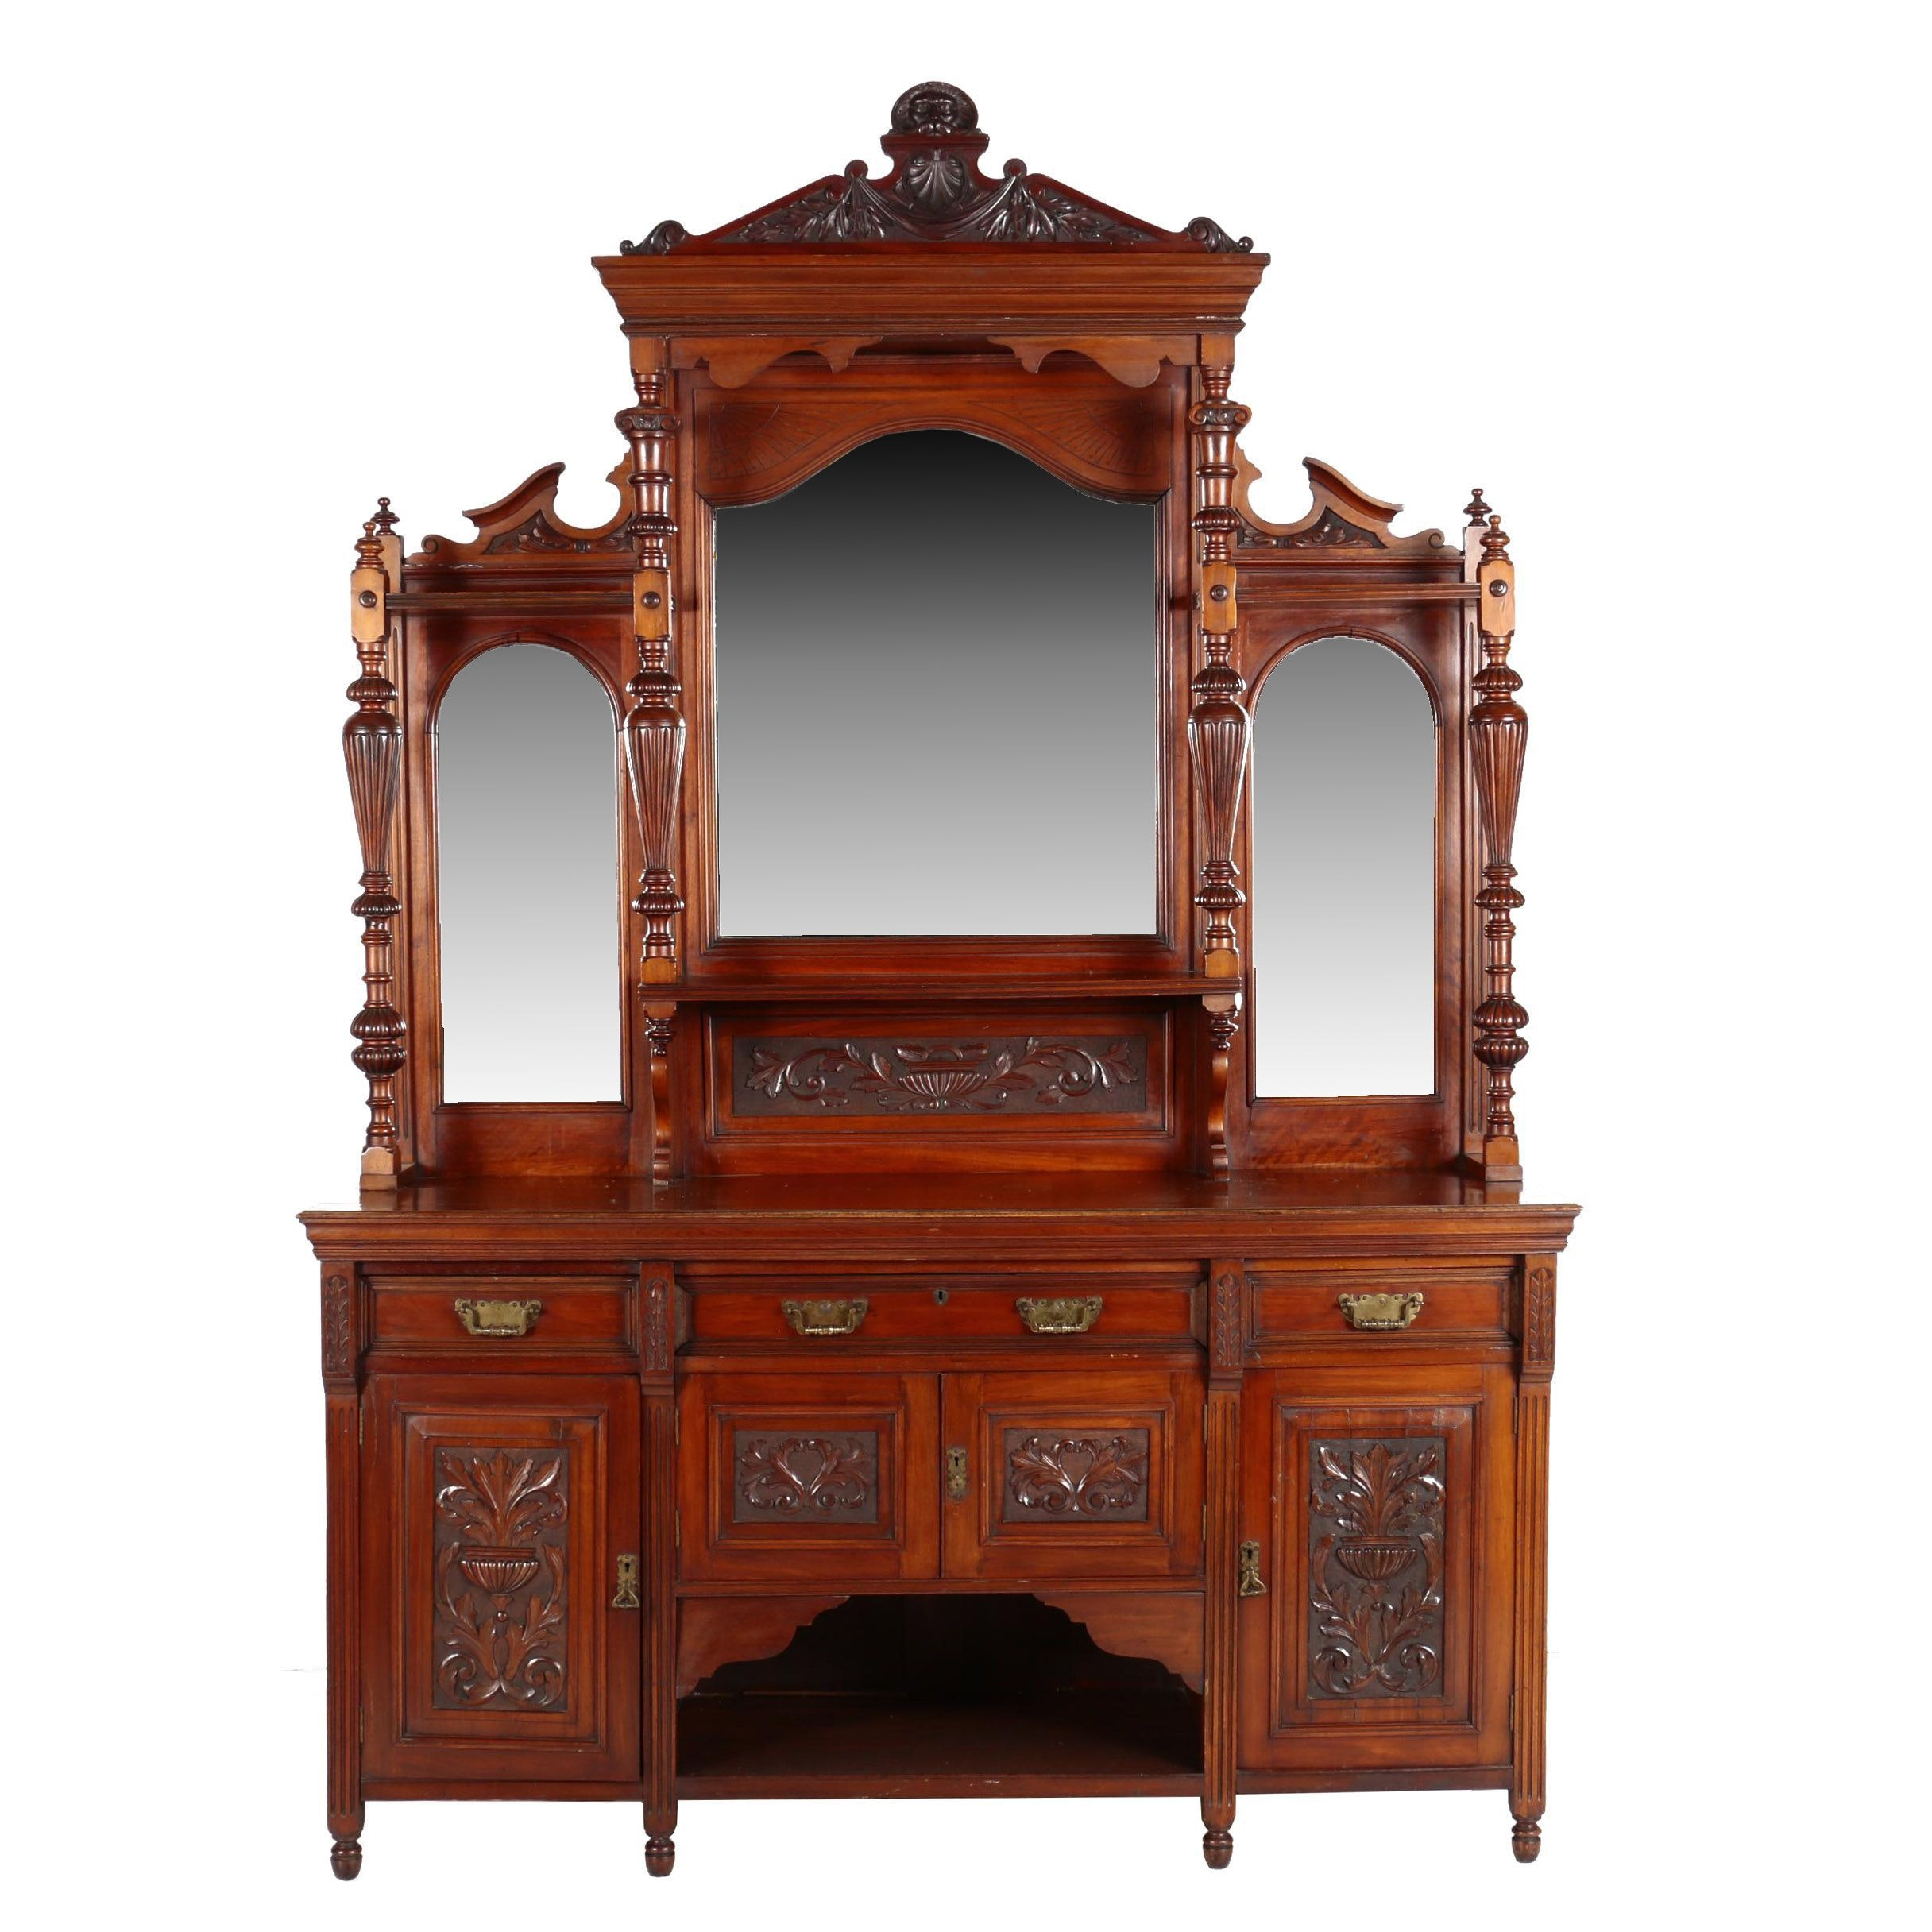 Victorian Walnut Sideboard with Mirrored Etagere Top, Late 19th Century